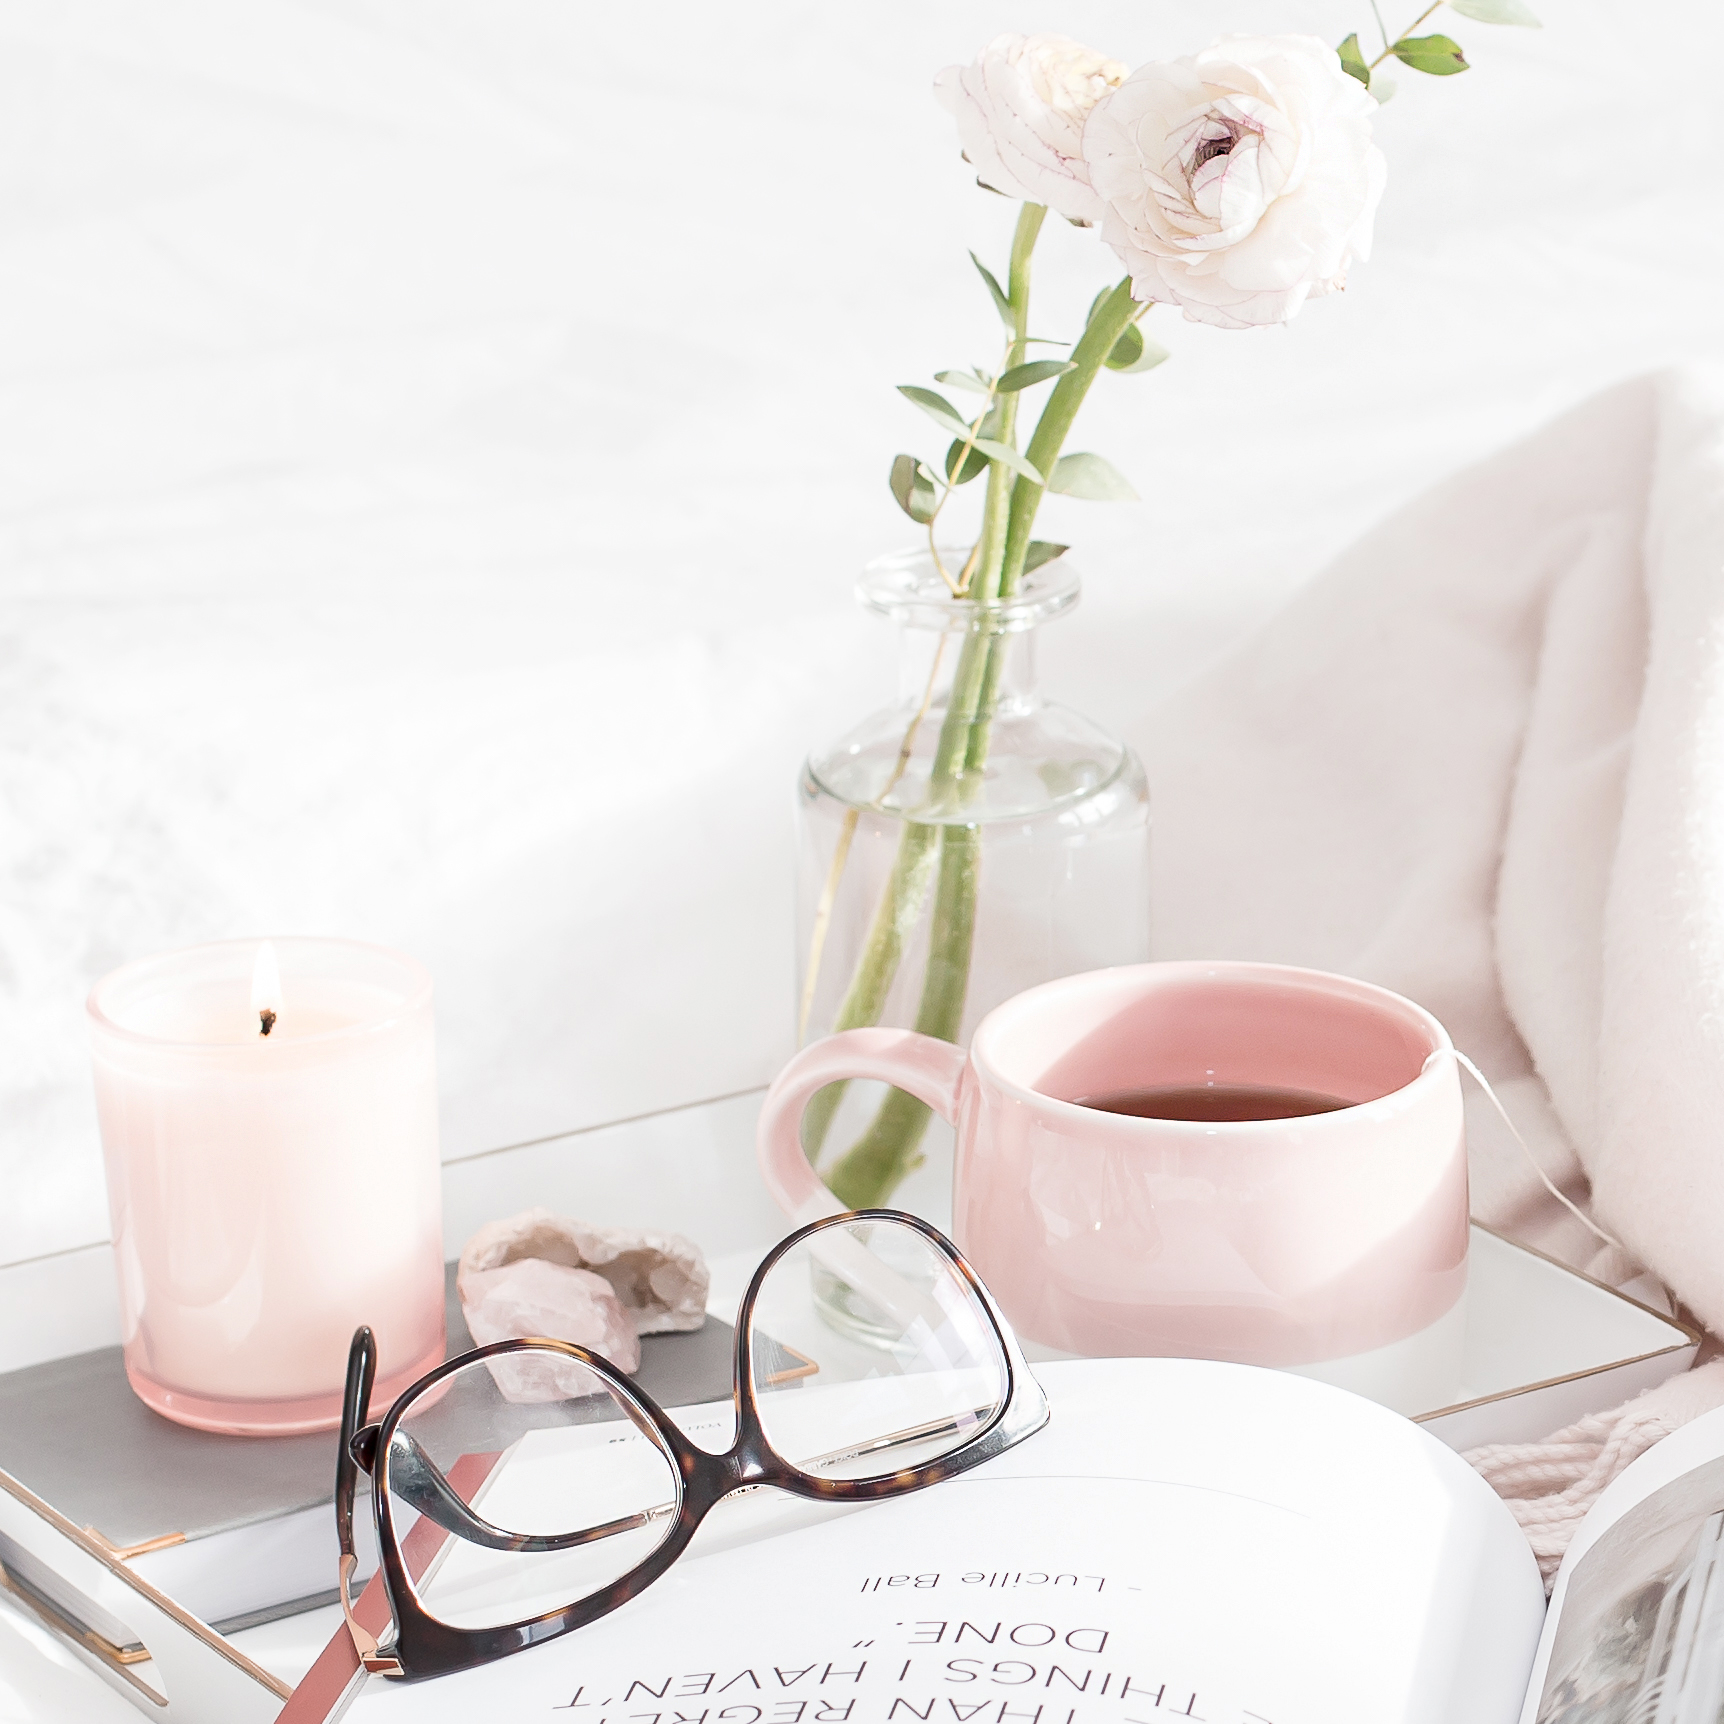 Self care ideas that really have the power to transform your #mentalhealth. This list is full of great activities and things to do to help you stress less and love yourself more. #mindset #inspiration #selflove #selfcare #bossbabe #momboss